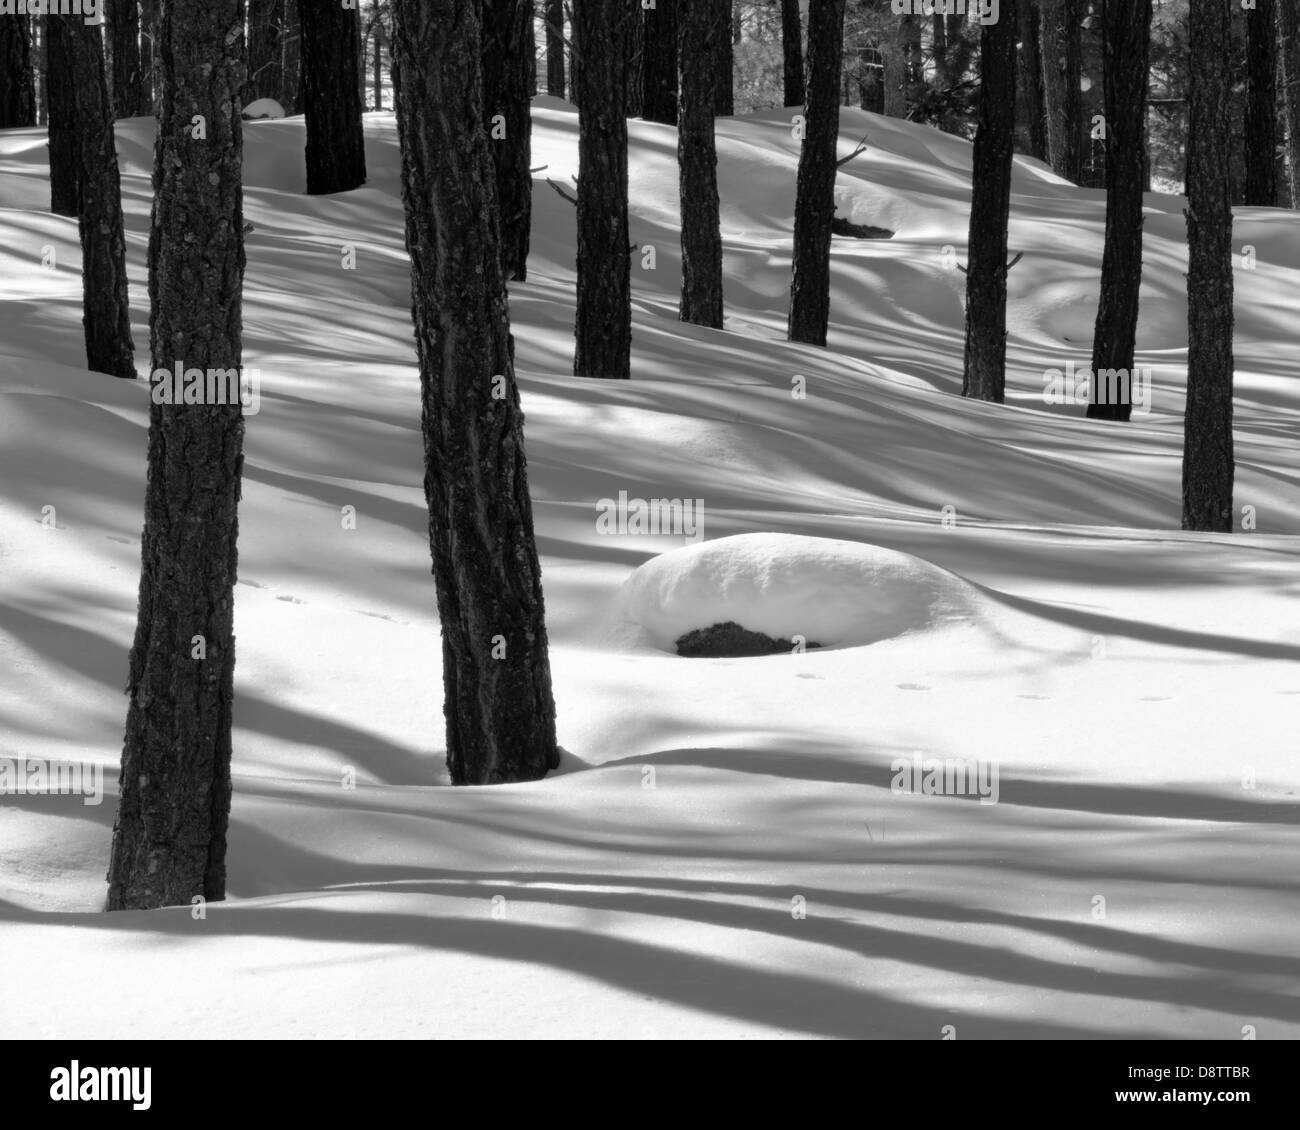 Fresh snow covers the ground allowing the trunks of the pine trees and their shadows to create a wonderful winter - Stock Image